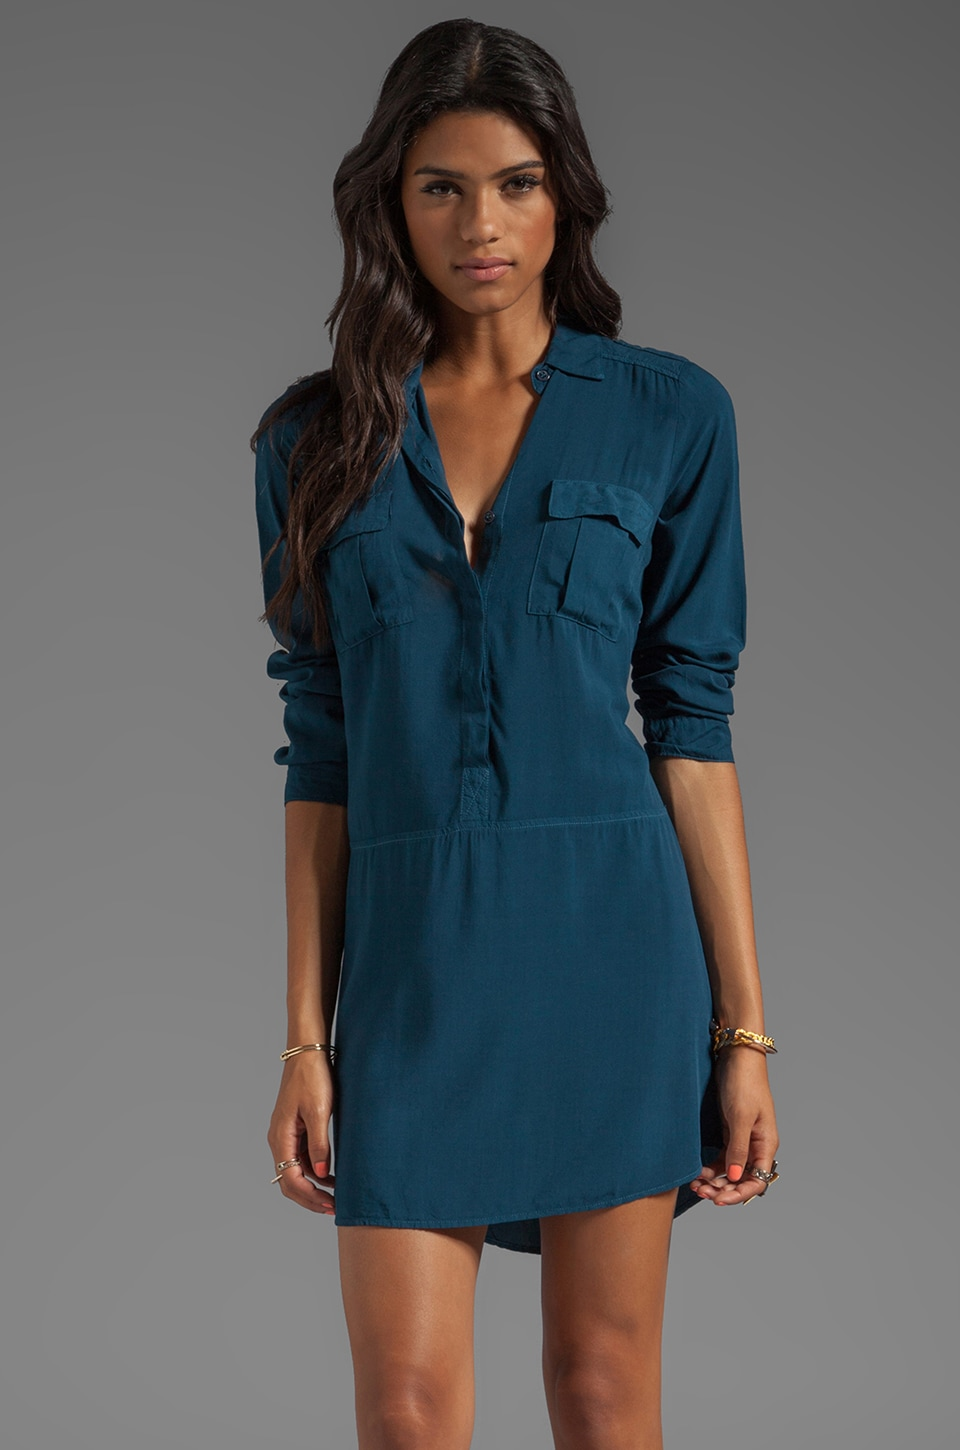 Splendid Long Sleeve Shirt Dress in Deep Teal